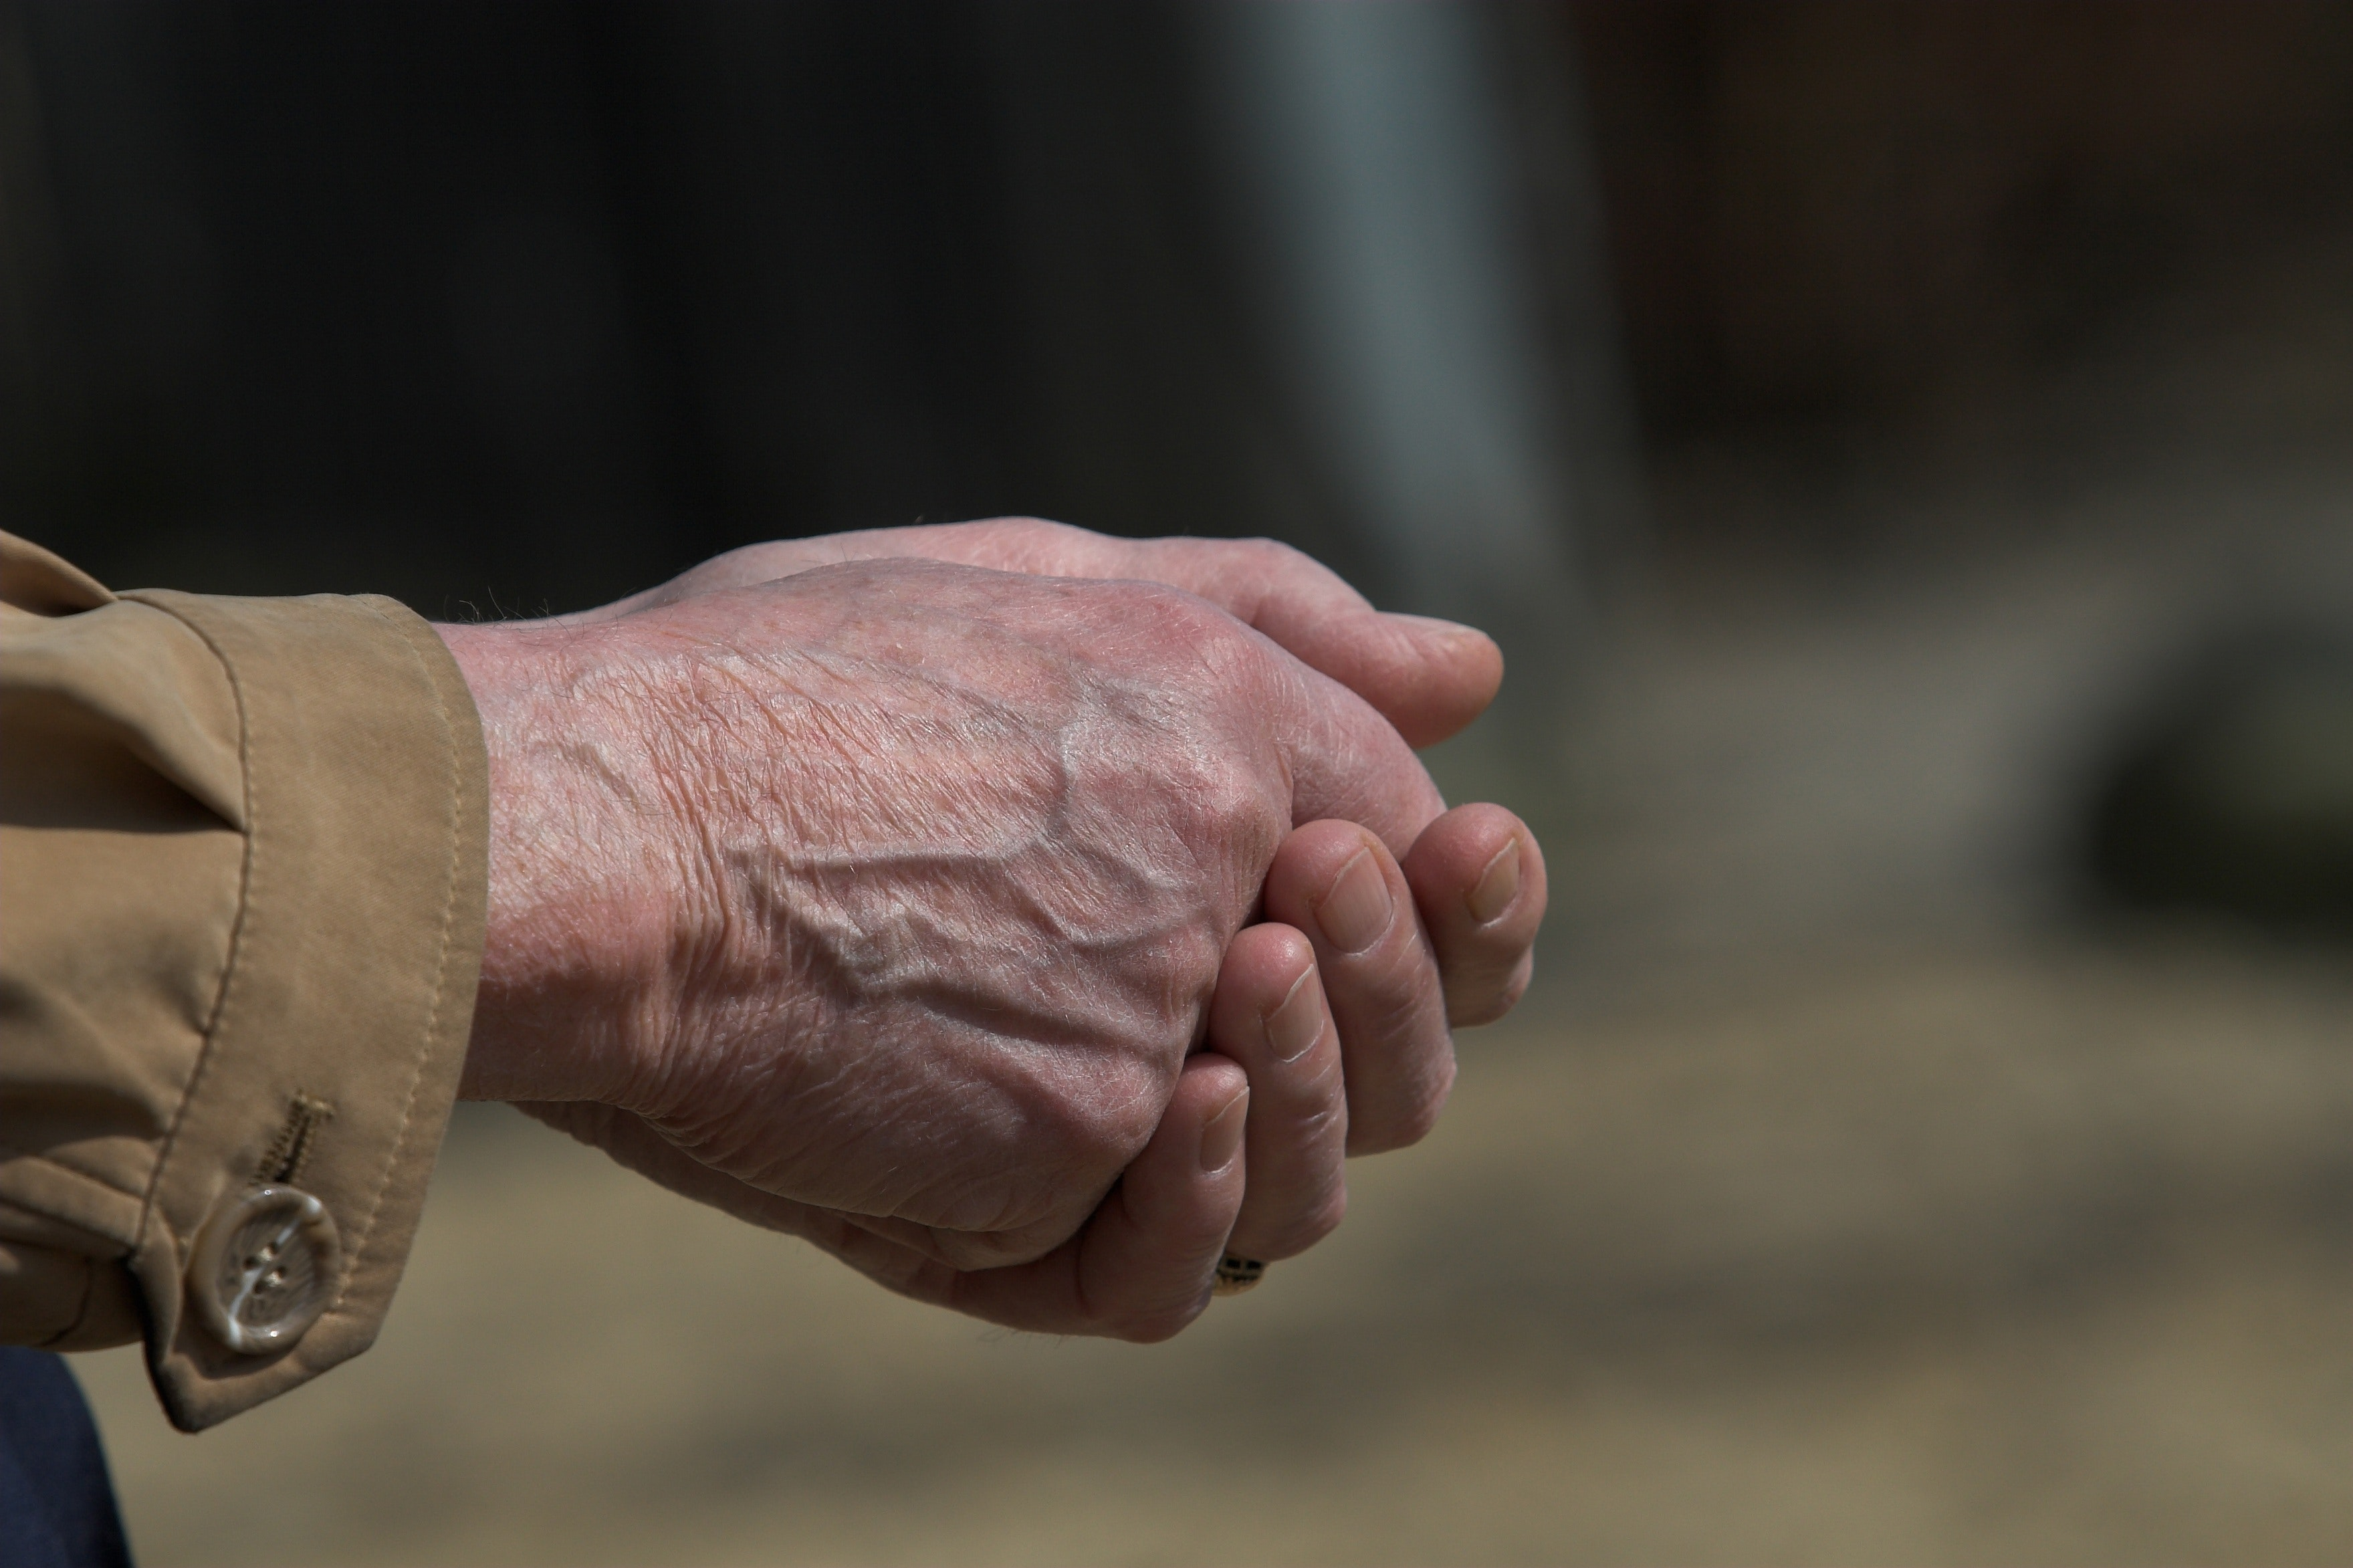 2 Person Holding Hands 183 Free Stock Photo